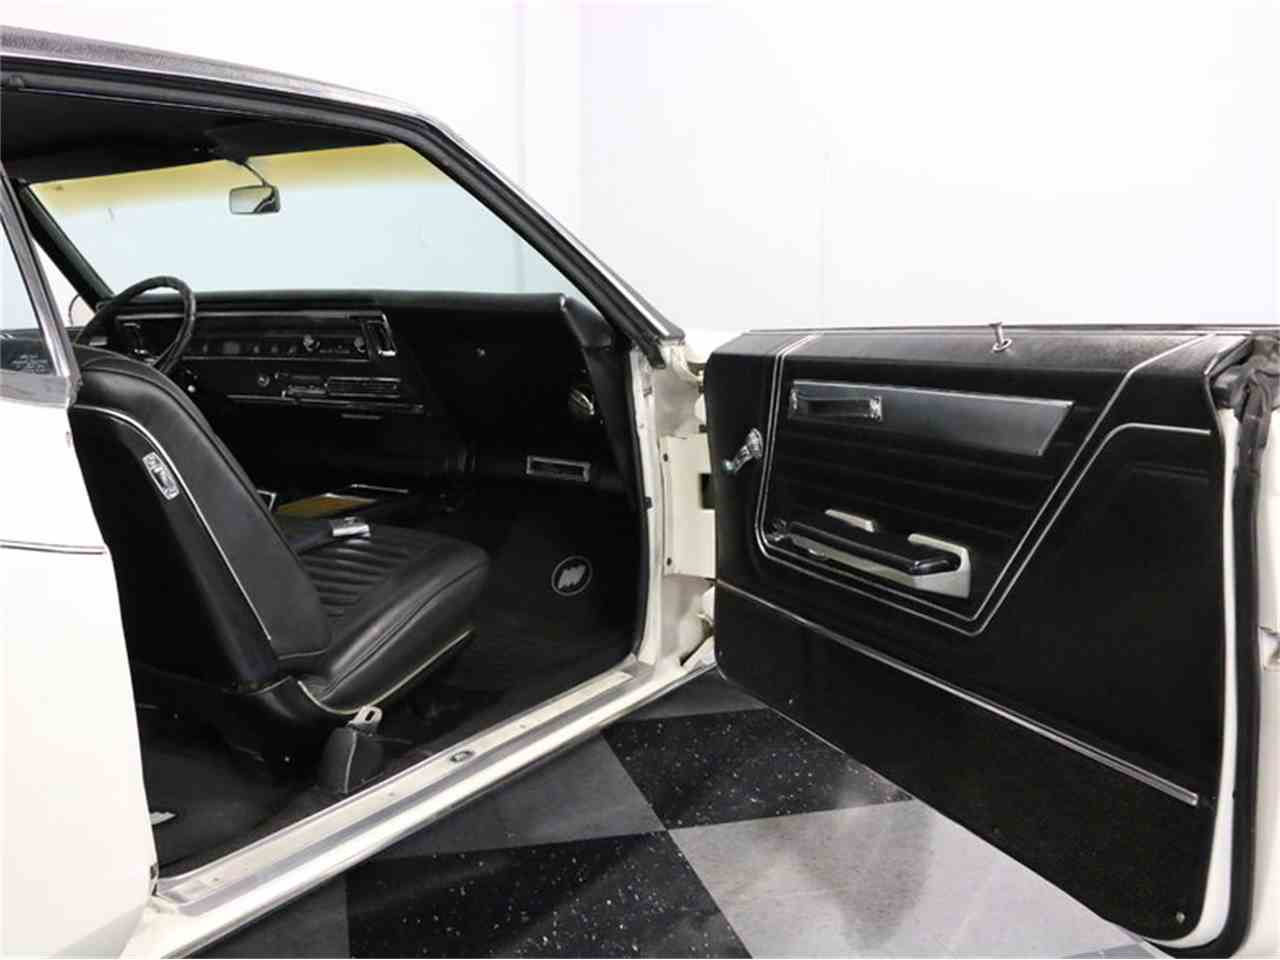 Large Picture of 1967 Riviera located in Texas - $20,995.00 Offered by Streetside Classics - Dallas / Fort Worth - M5N7